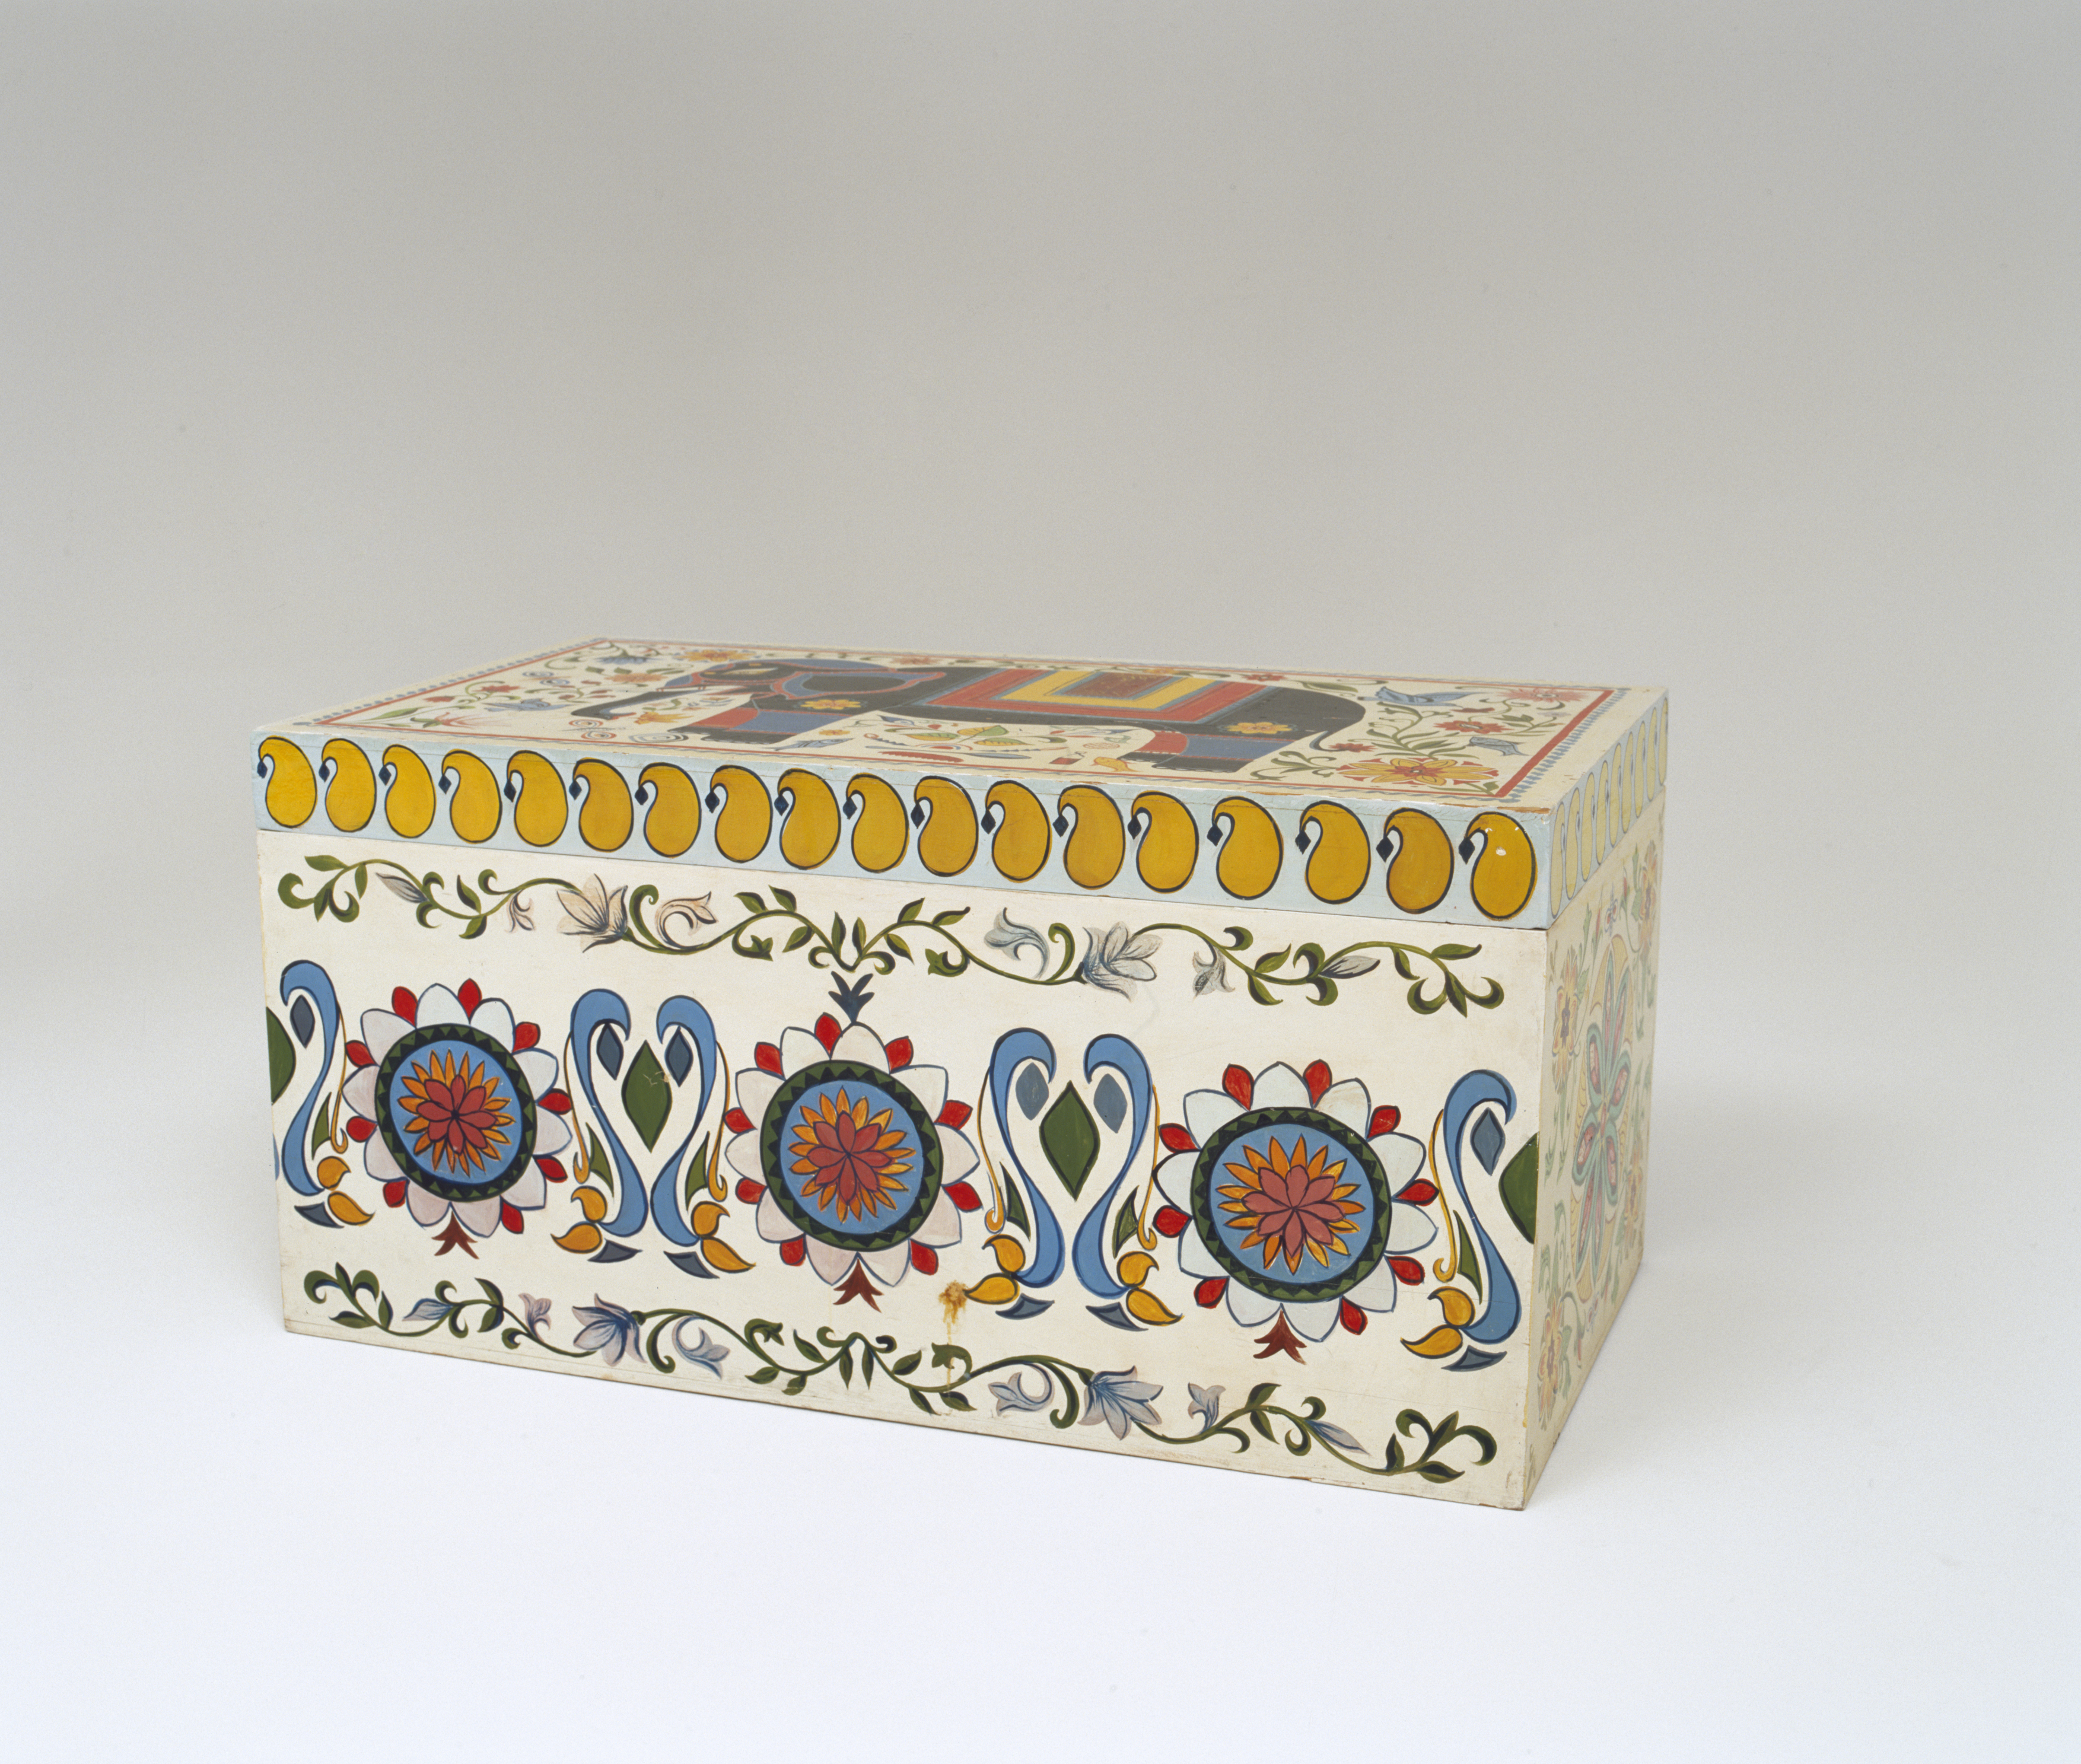 Wooden linen chest hand-painted to match the nakshi kantha. It is decorated on the top and all four sides. On the top is a black elephant with yellow red and blue trappings surrounded by flowers, leaves, fish and some articles of everyday usage. The border is a red line with a blue 'ribbon' pattern outside it. Each end of the box is decorated with a stylised lotus flower in the centre surrounded by more flowers, leaves and insects. On the front of the box is a whole row of stylised lotus flowers surrounded by swirling fronds of vegetation. There is a row of yellow boteh (in Bangladesh, kalka) around the top.